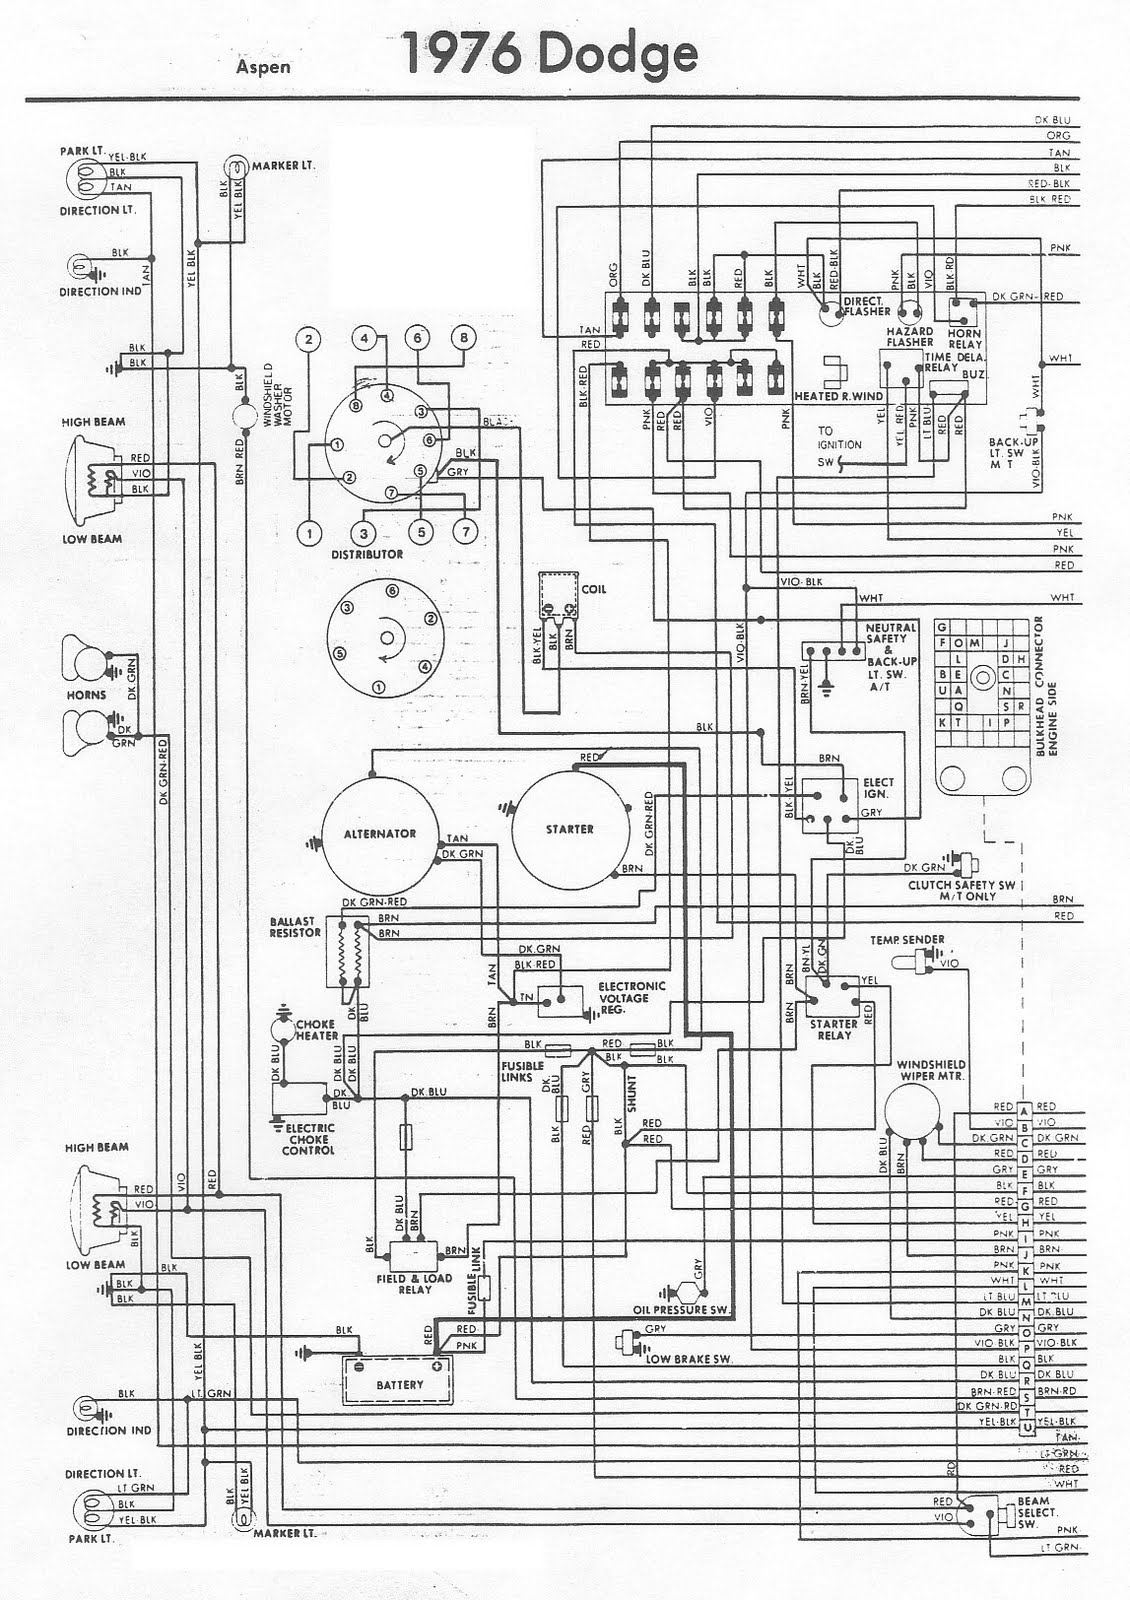 wiring diagram electrical system circuit 1976 dodge aspen user guide ford electrical wiring diagrams wiring diagram electrical system circuit 1976 dodge aspen